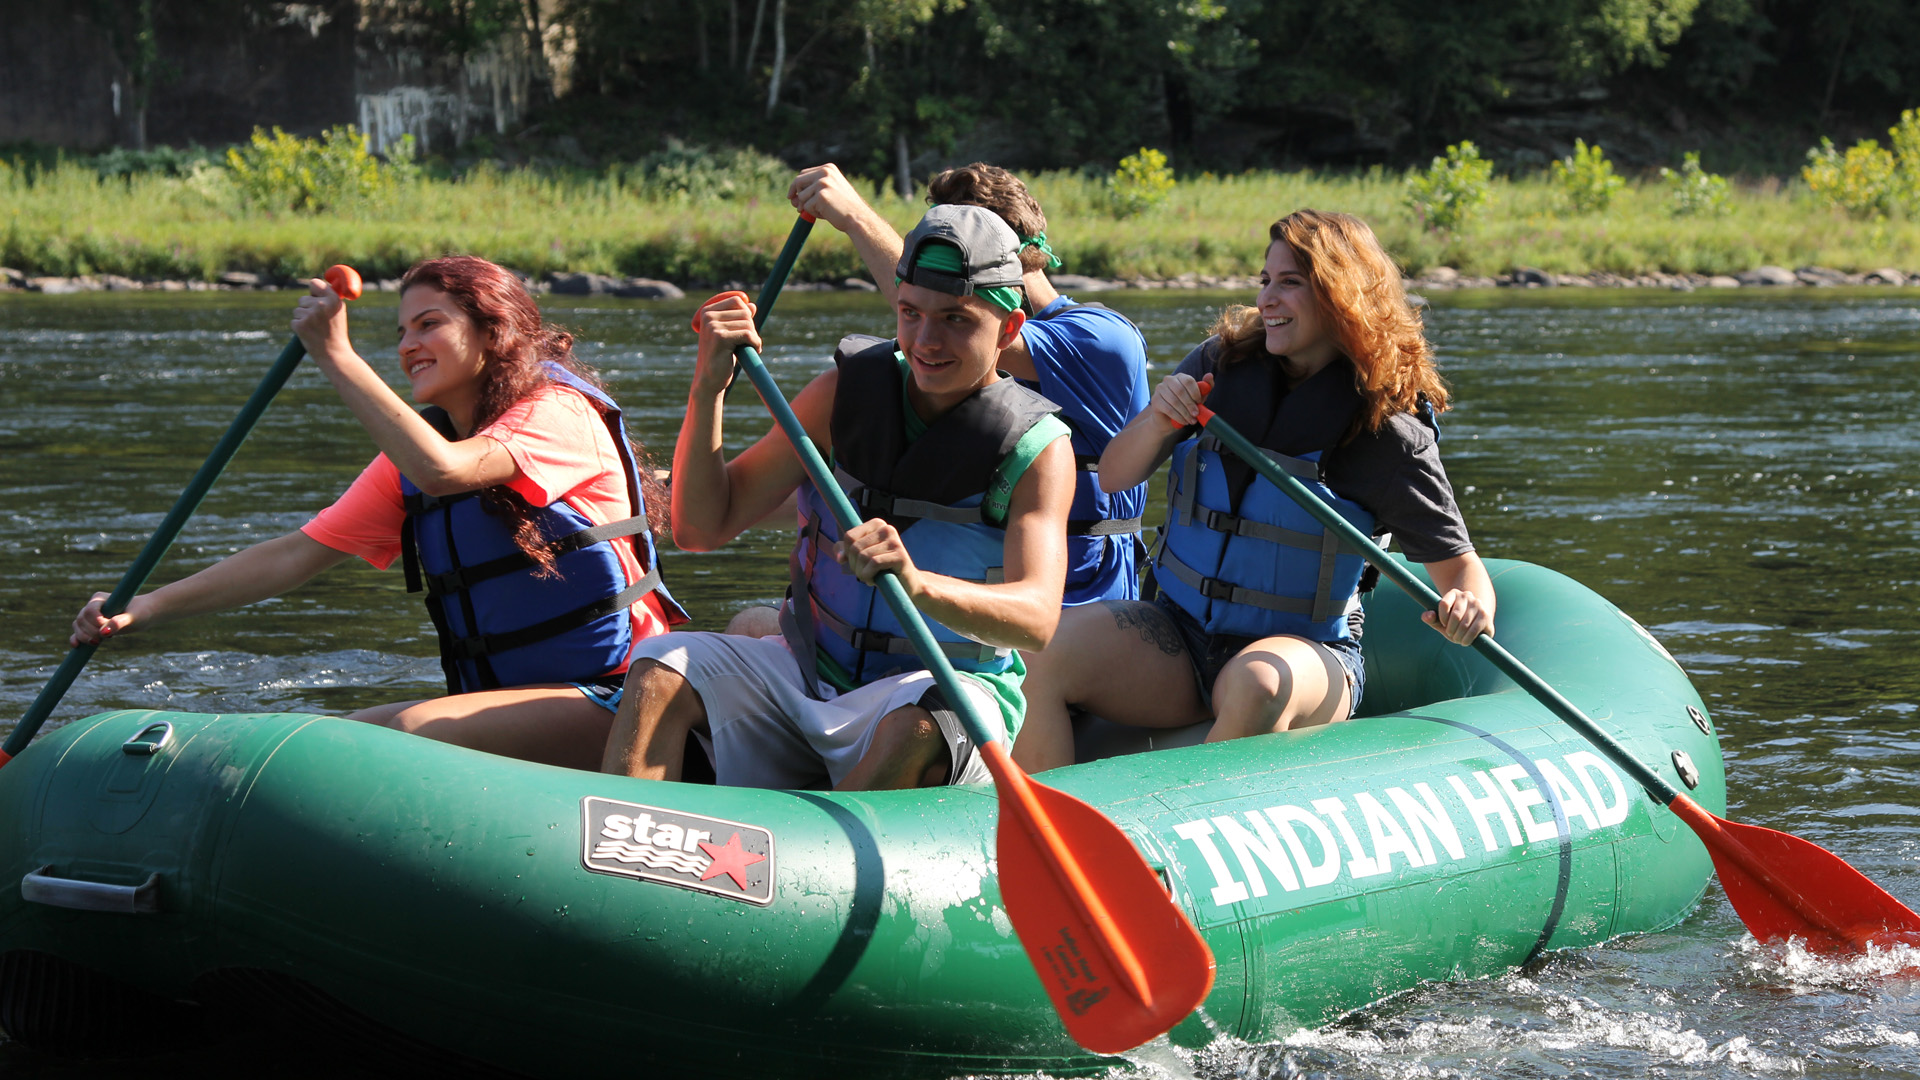 group of teens navigating calm waters in raft Indian Head Canoeing Rafting Kayaking Tubing Delaware River